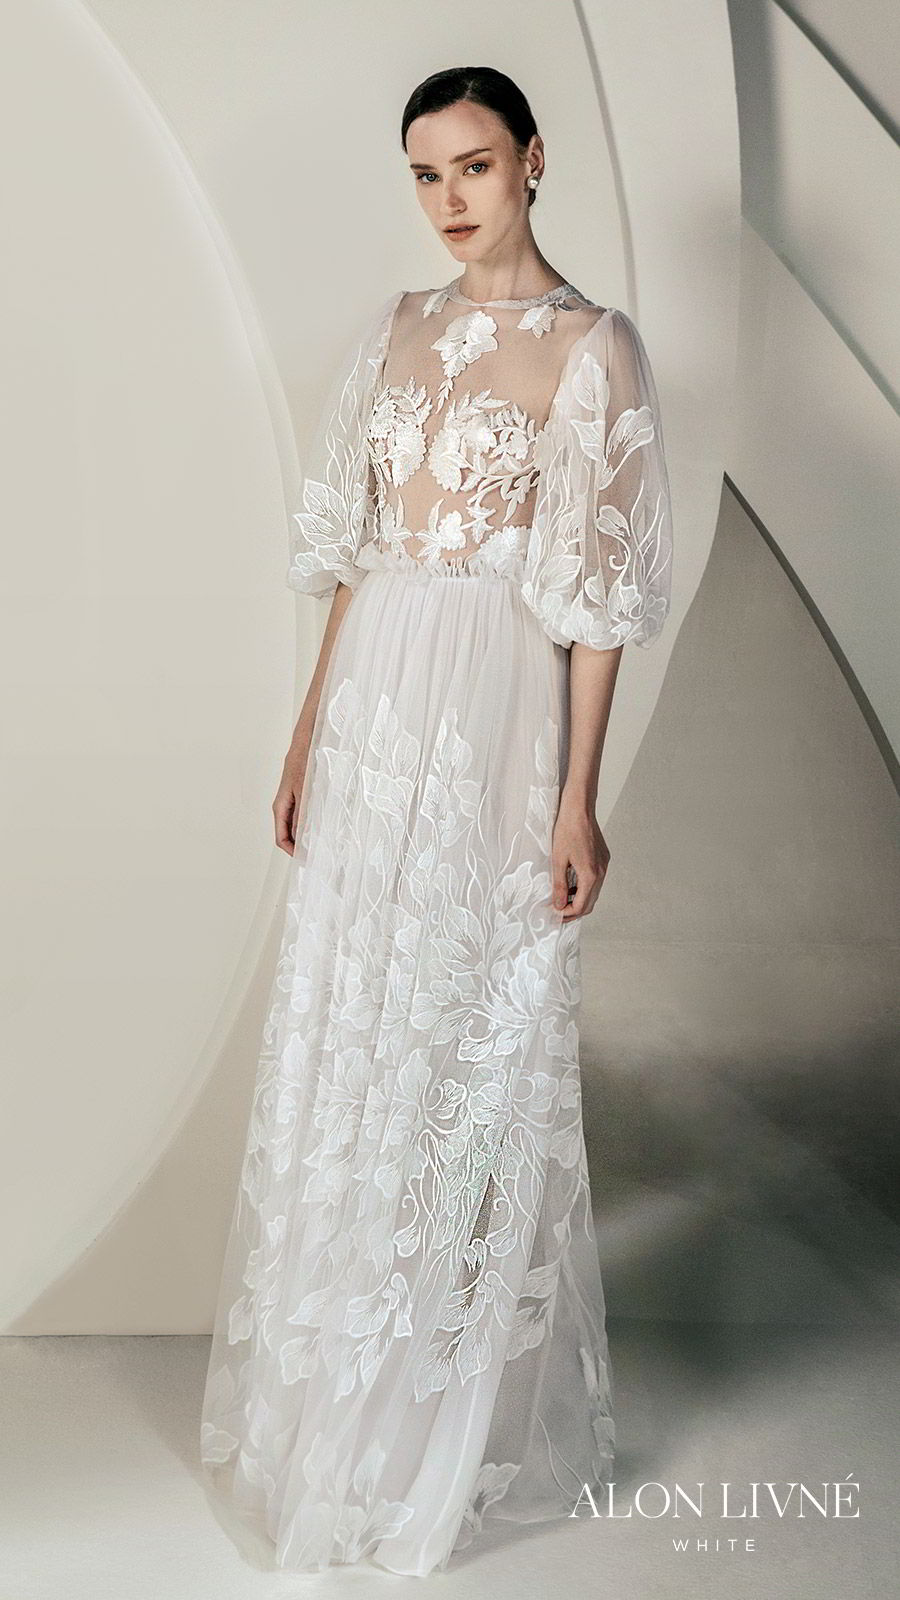 alon livne white spring 2020 bridal 3 quarter illusion puff sleeves jewel neckline sheer bodice fully embellished embroidered lace a line wedidng dress (glory) romantic bohemian mv